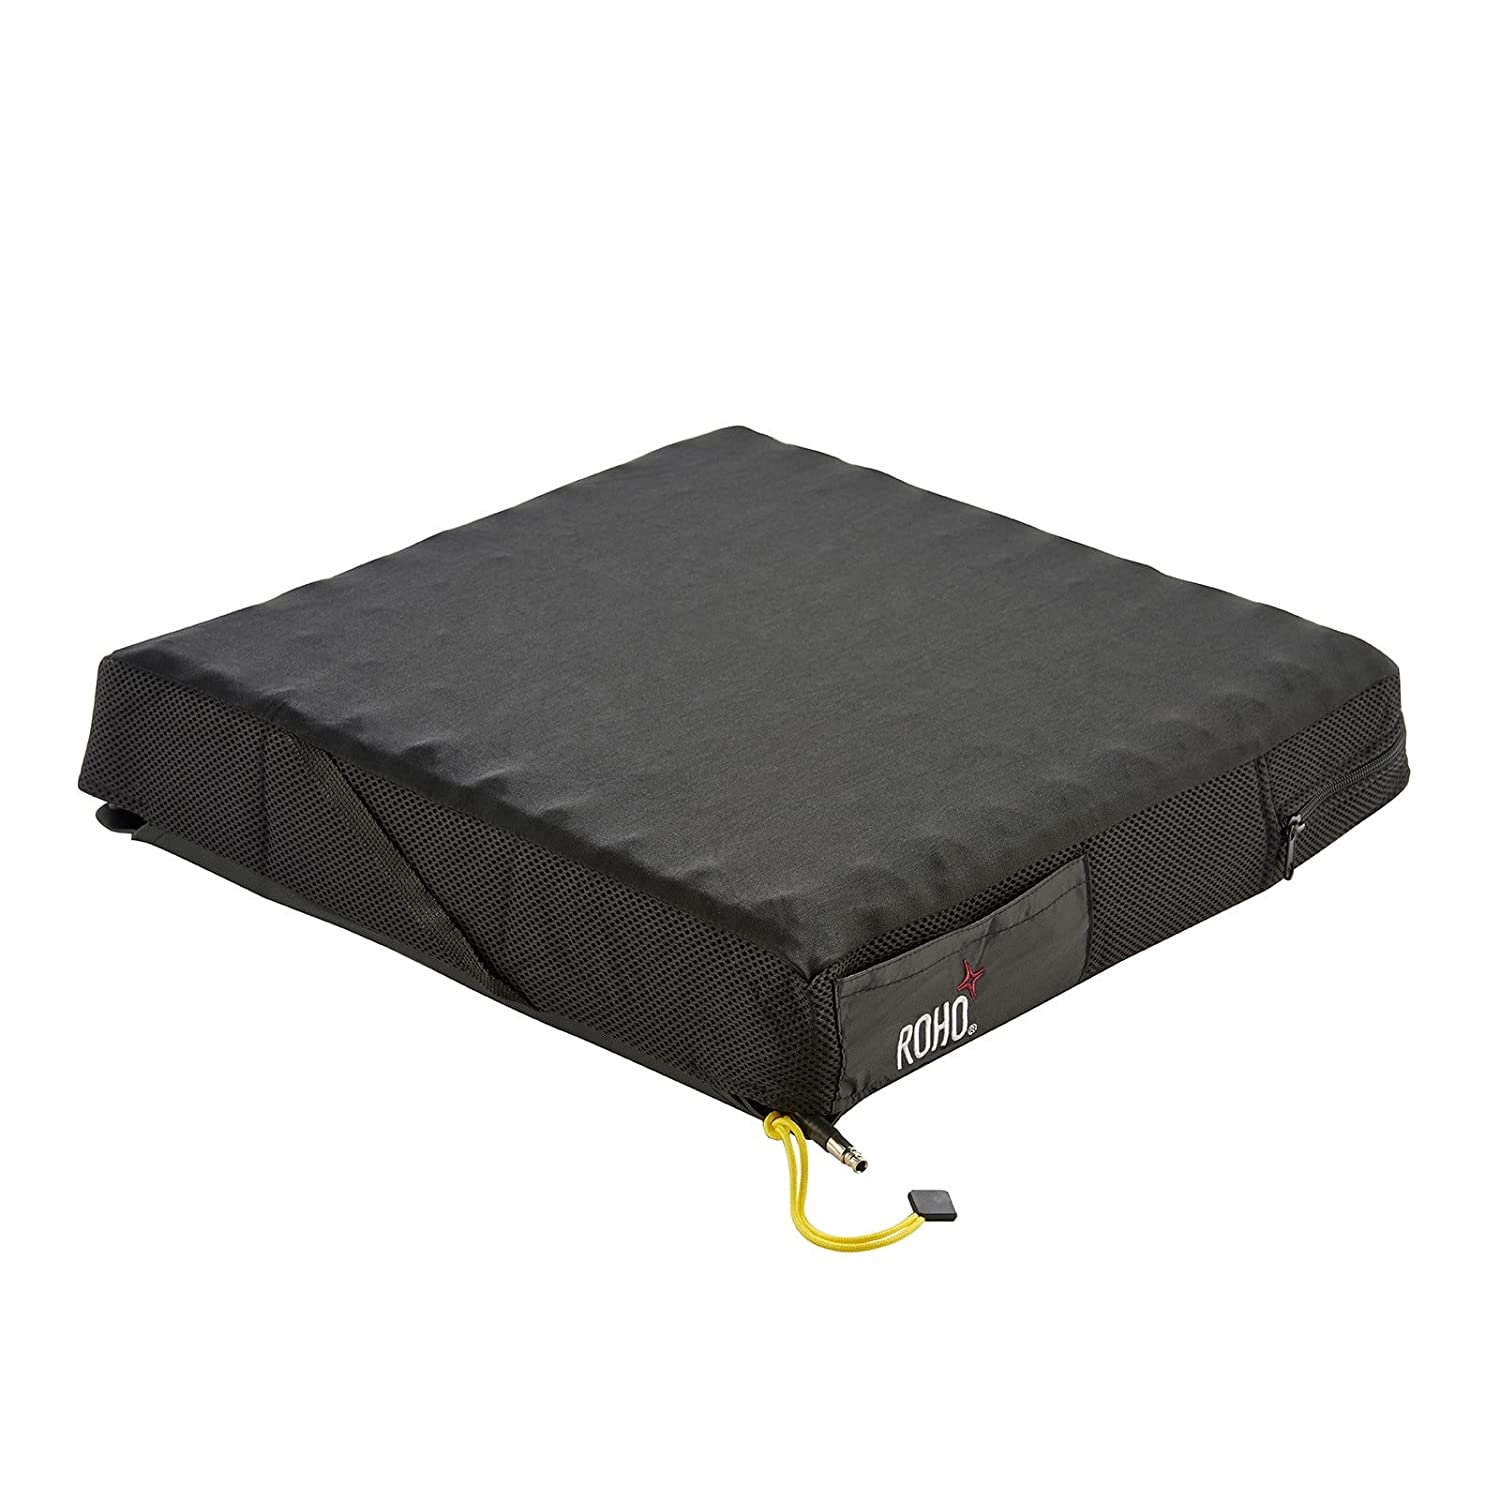 Roho 16 X 16 High Profile Single Valve Wheelchair Seating and Positioning Seat Cushion